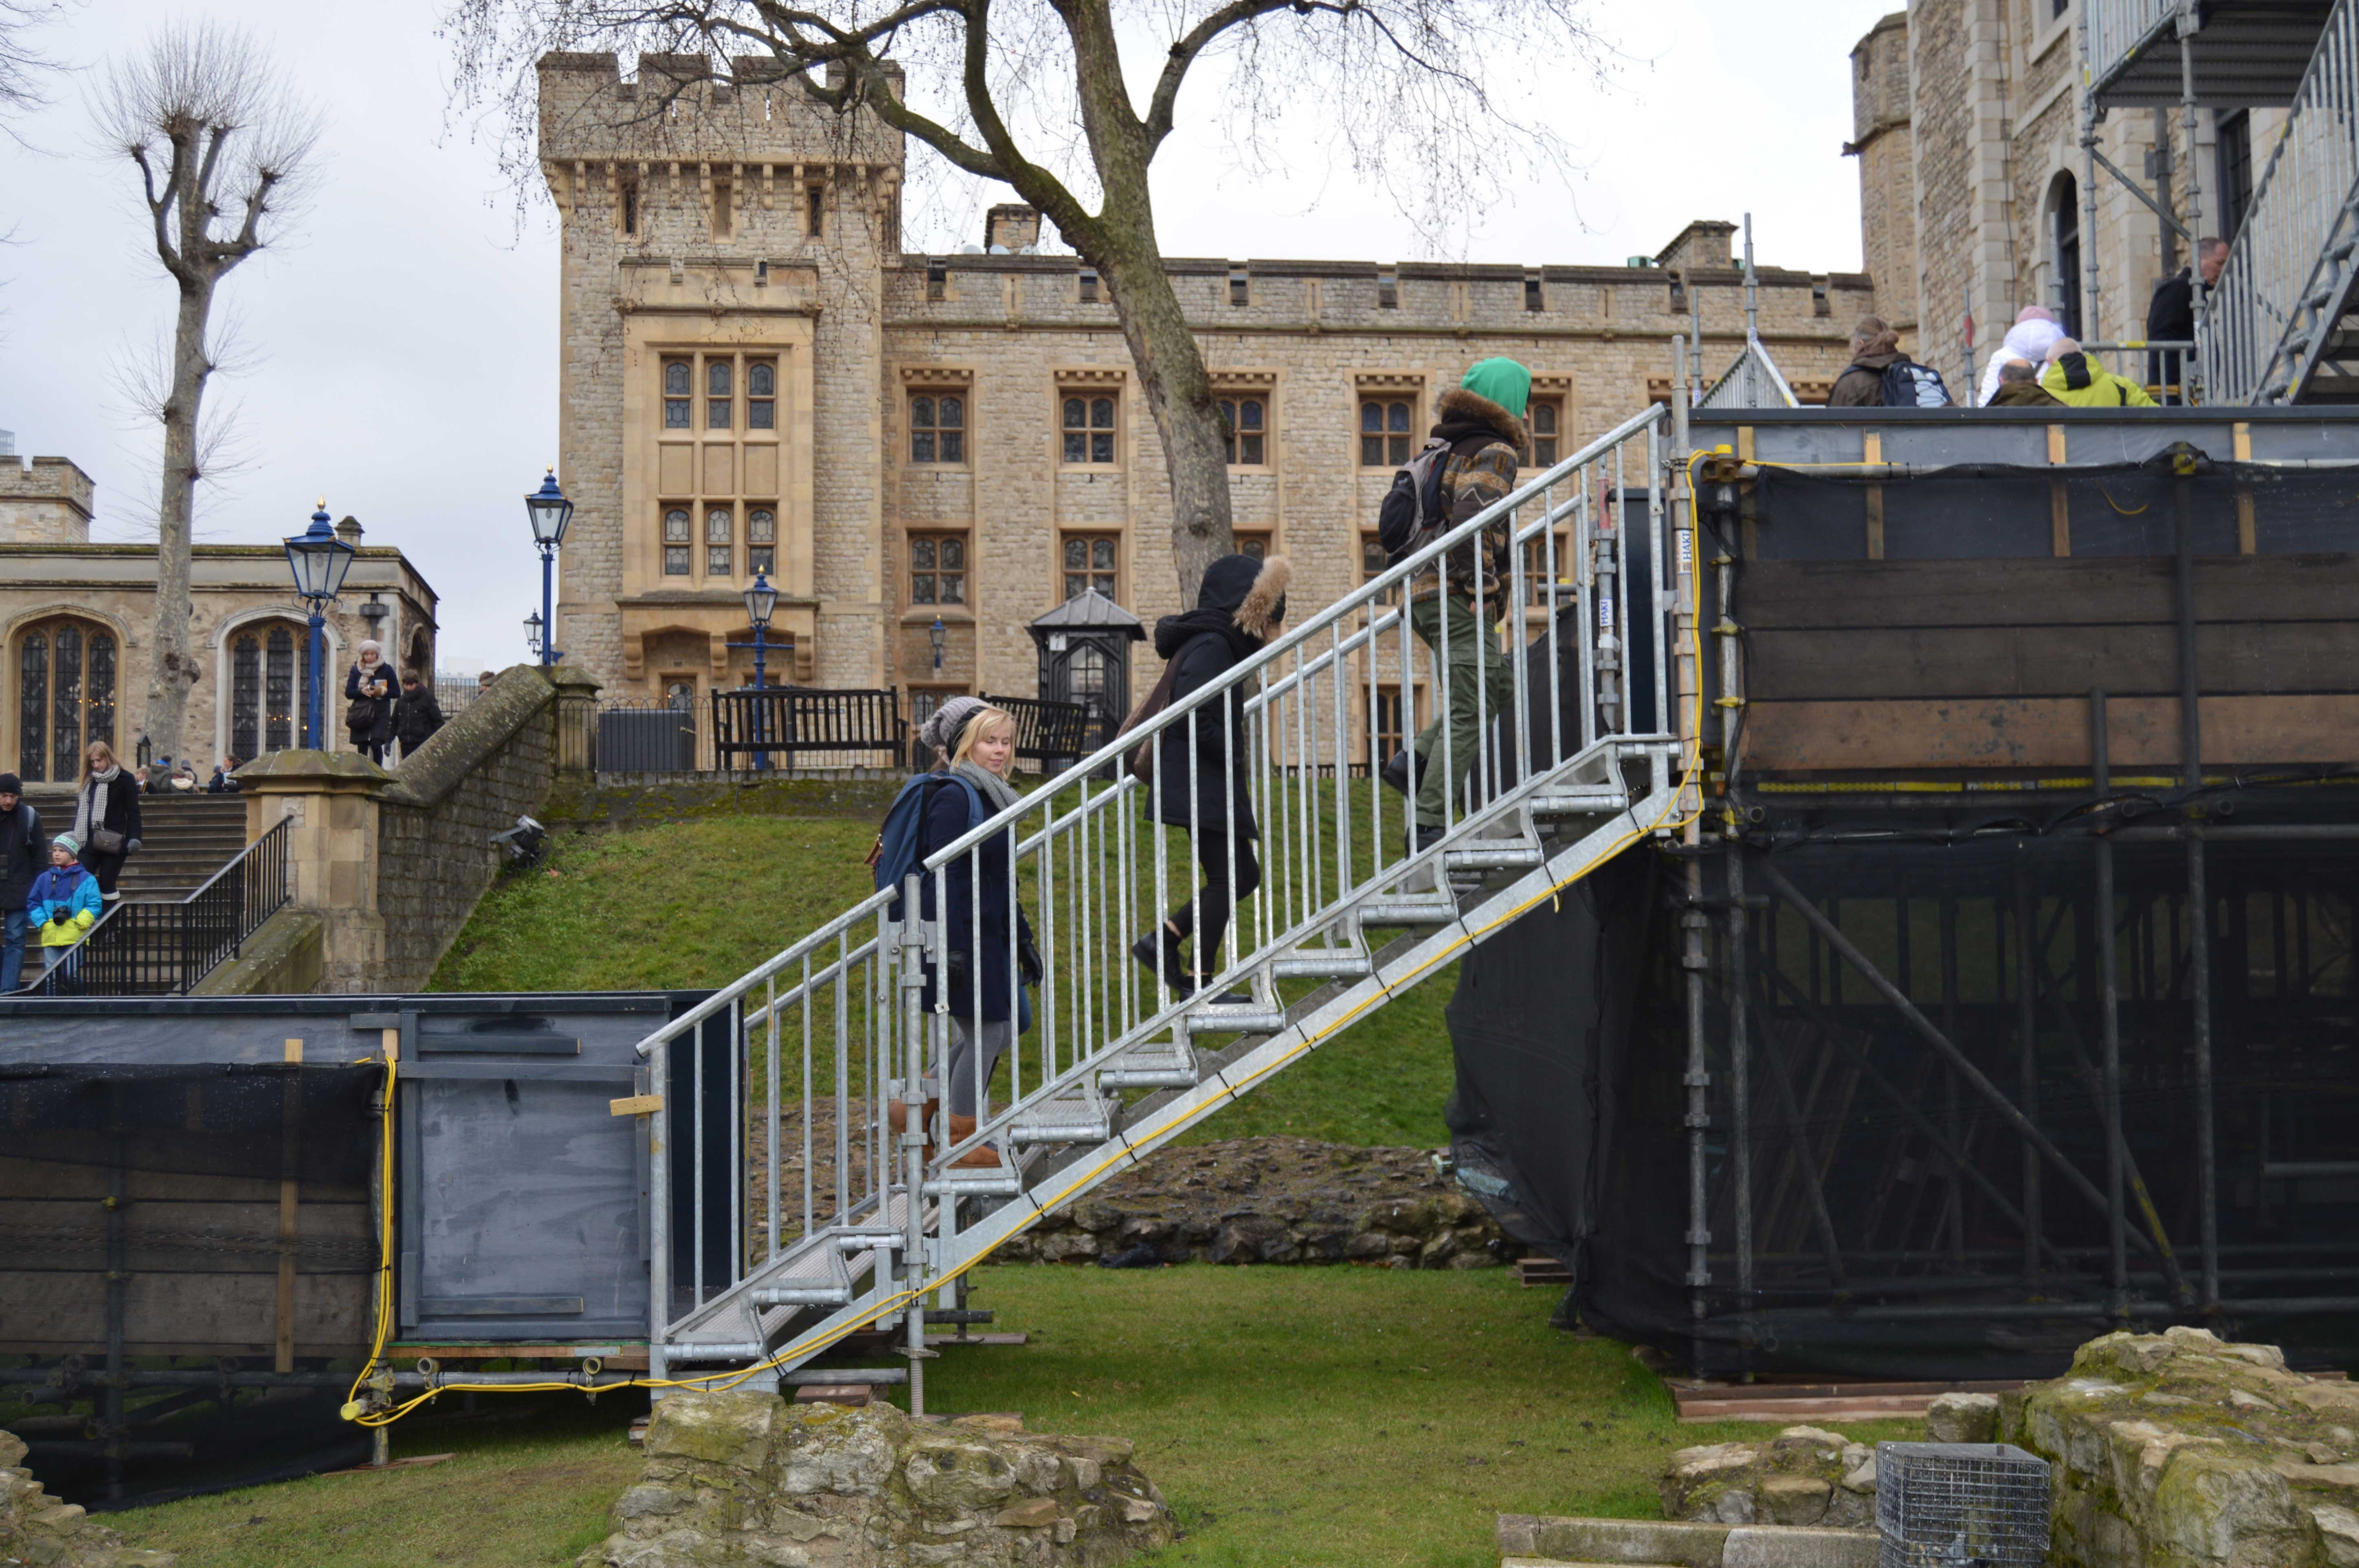 Haki Public Access Stair Takes Tourists Up To The Tower Of